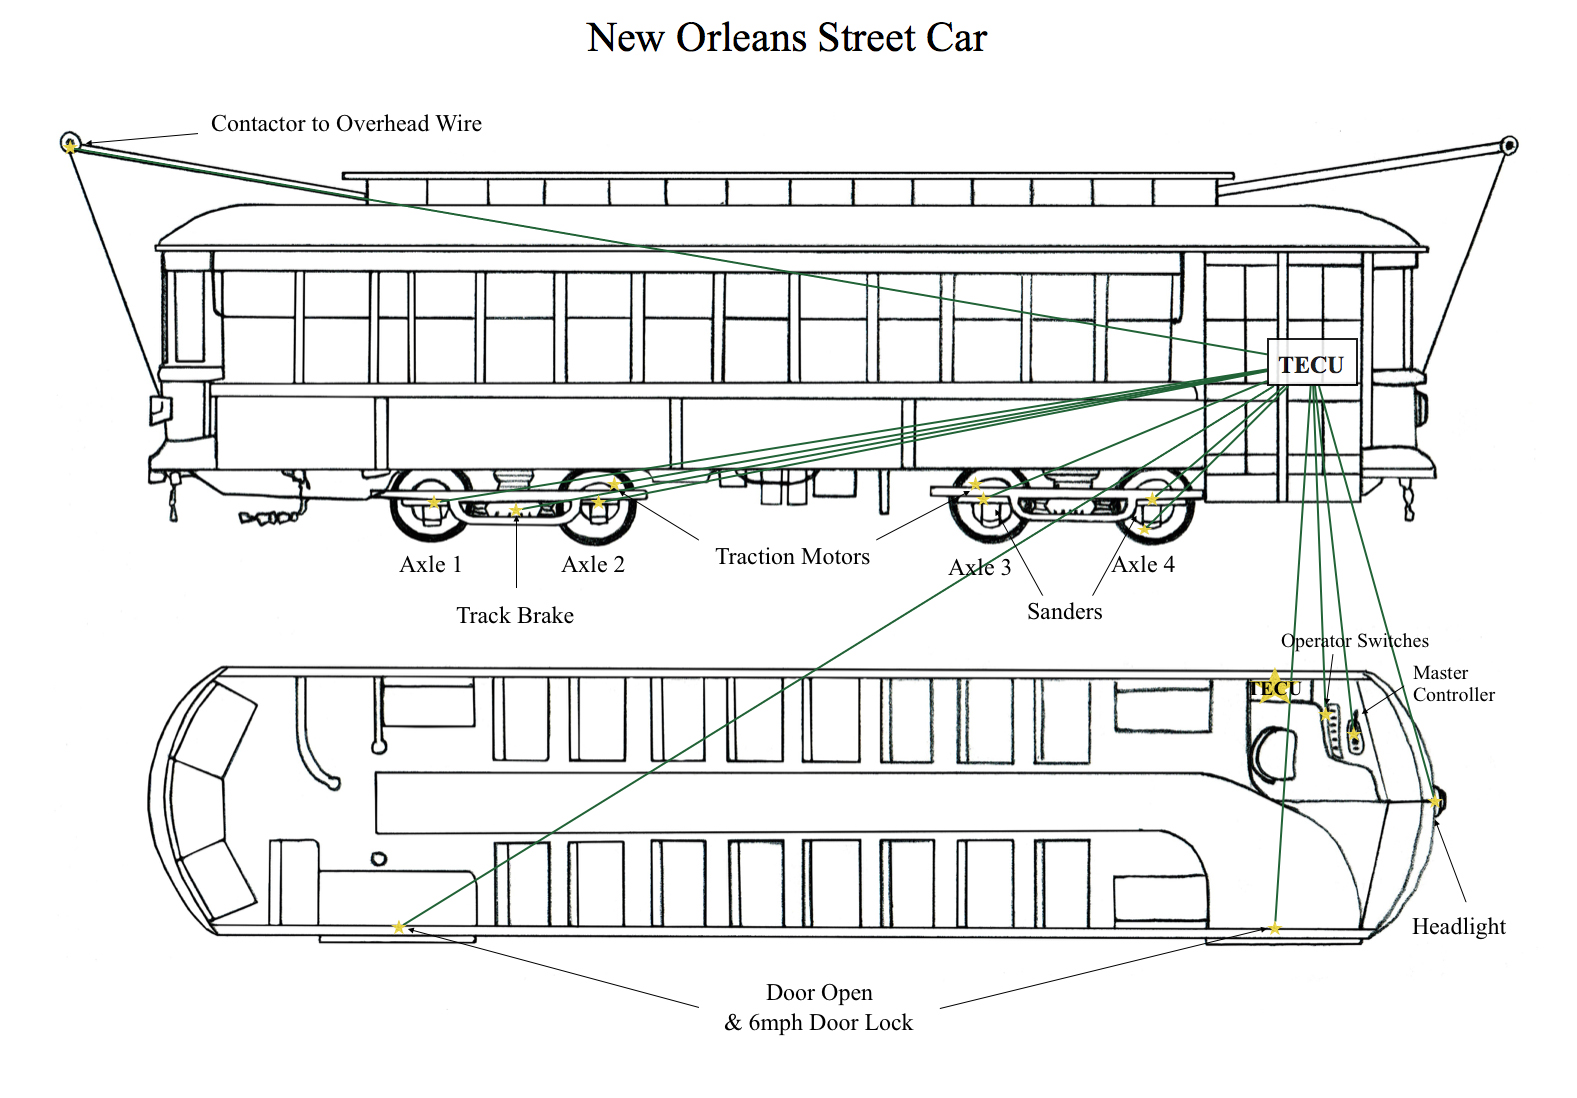 New Orleans streetcar drawing with location of TECU seen as right by operator by the master controller